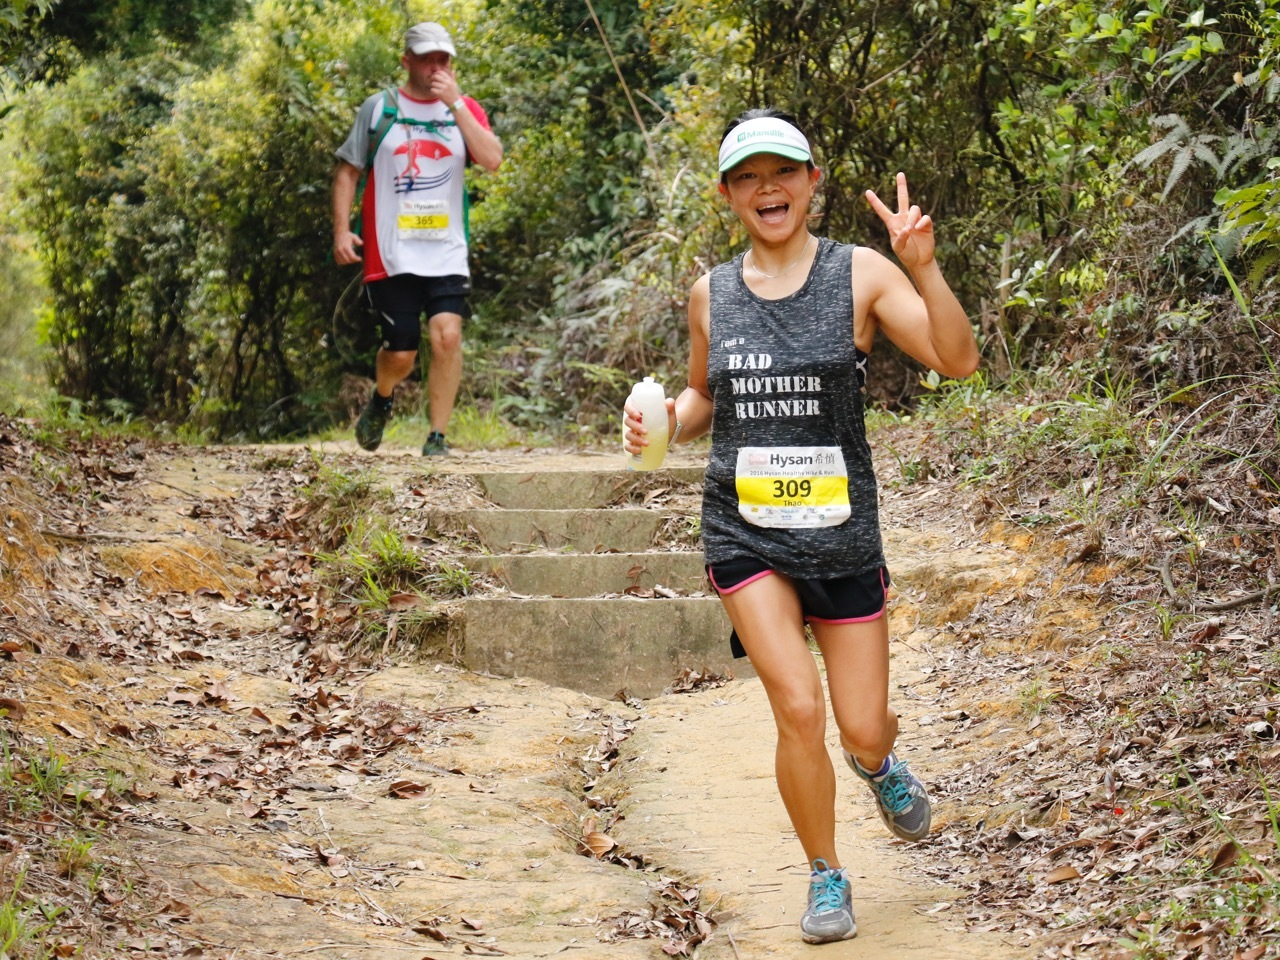 Upcoming races and trail runs in Hong Kong